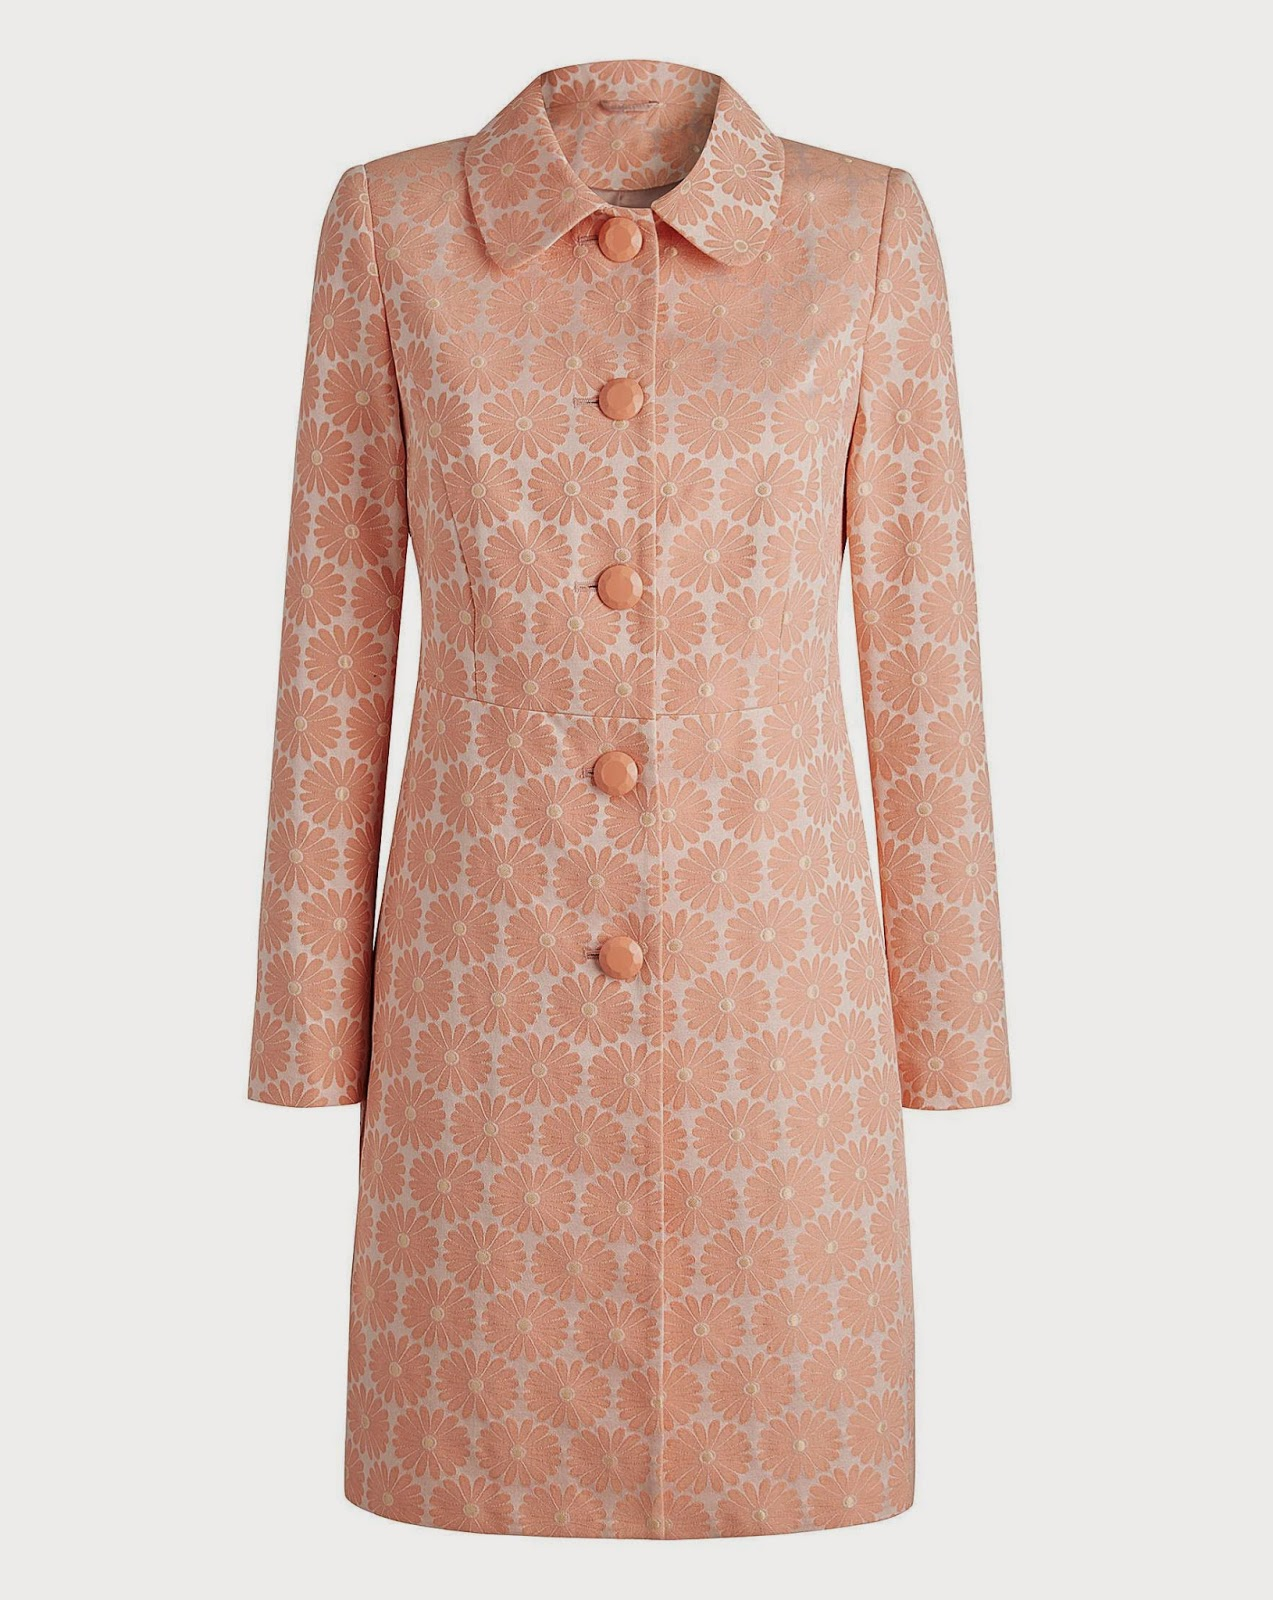 Simply Be Joanna Hope Daisy Jacquard Coat